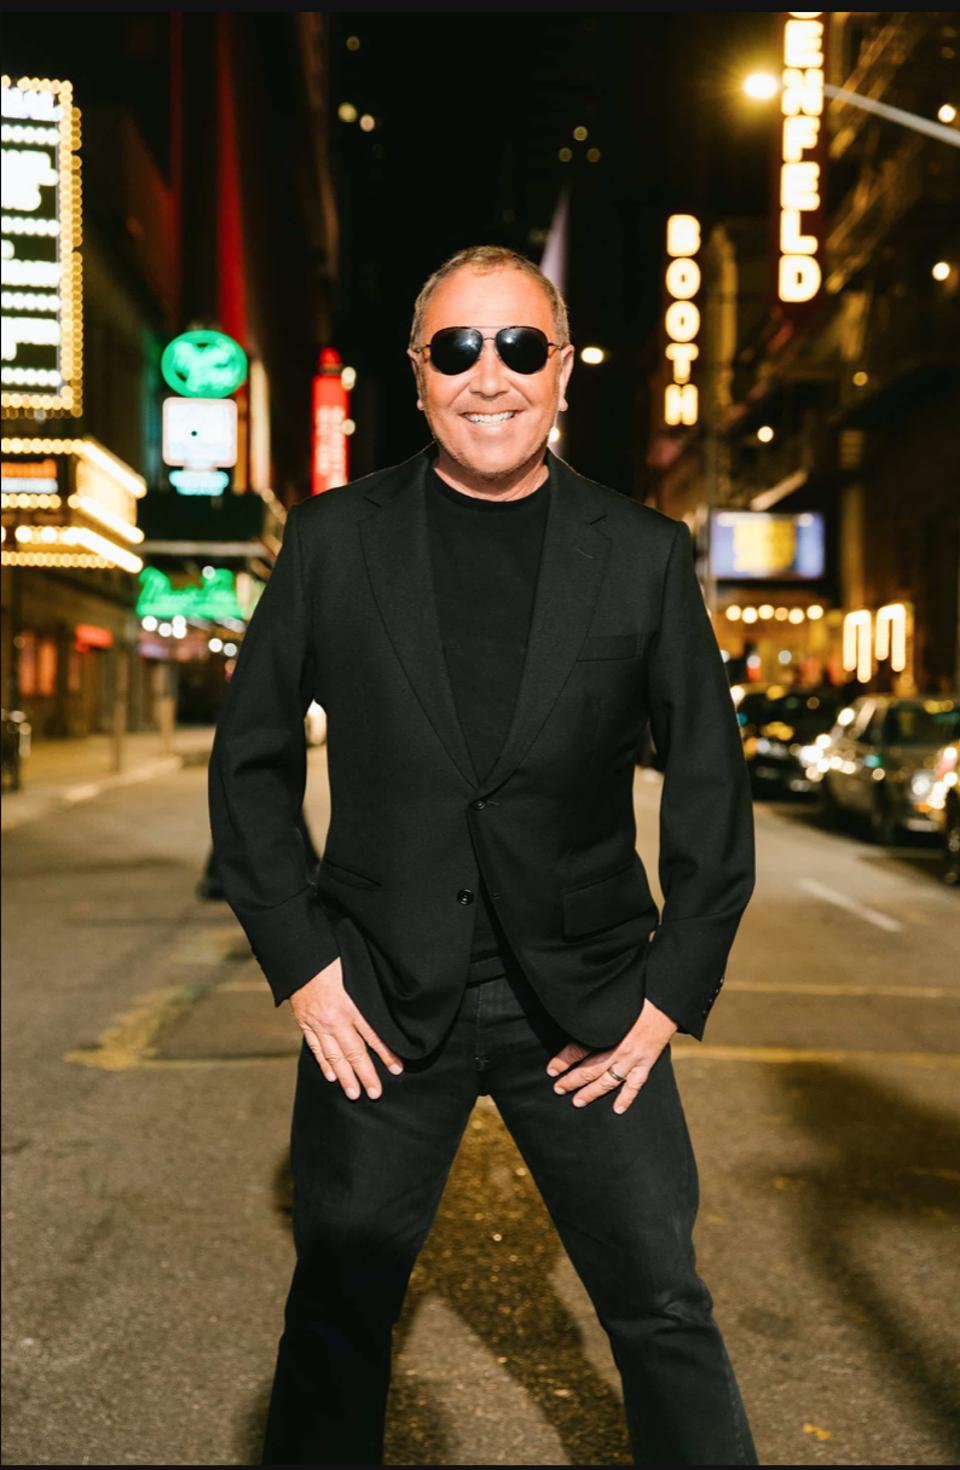 Designer Michael Kors standing on a street near Broadway and Times Square